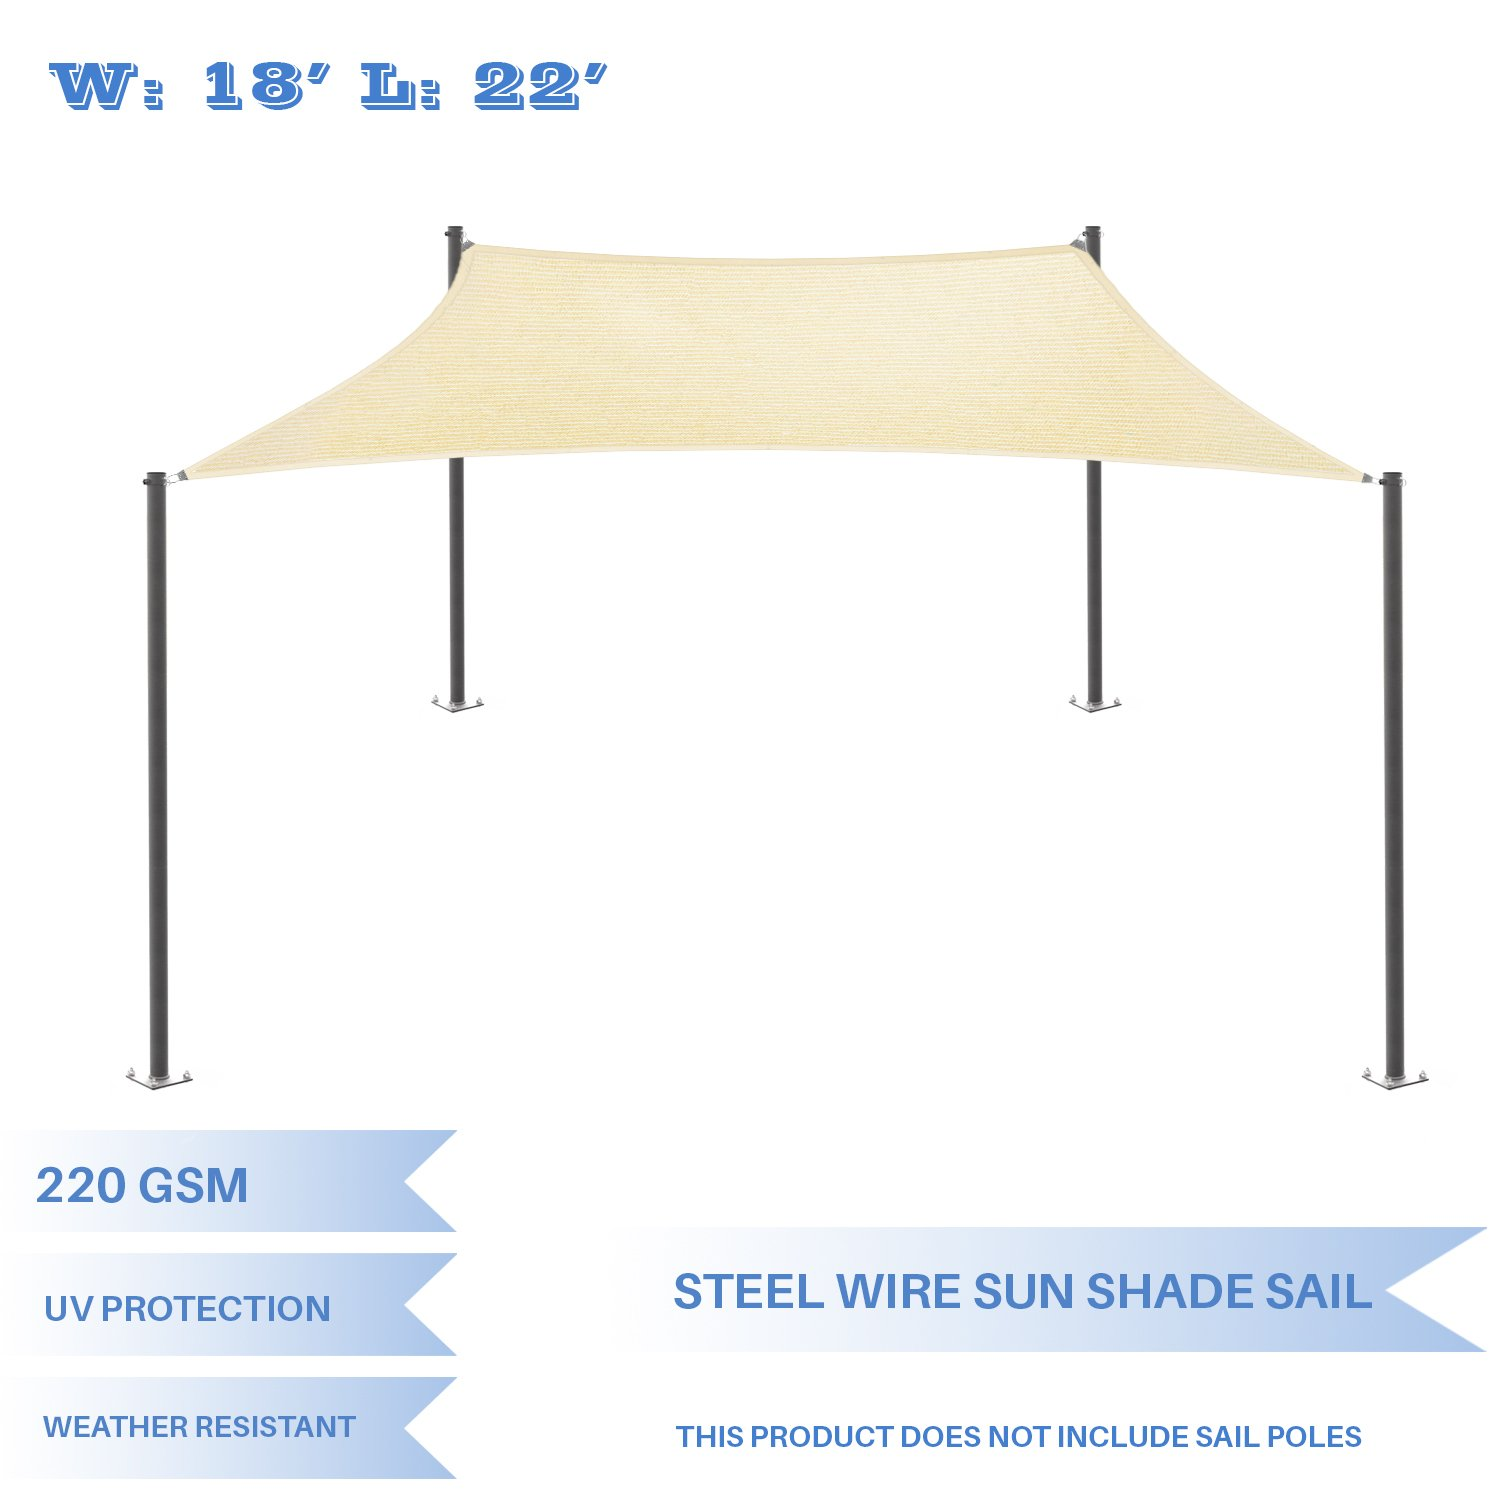 E K Sunrise 18 x 22 Strengthen Large Sun Shade Sail Reinforced by Steel Wire- Beige Square Heavy Duty – 220 GSM -Perfect Patio Outdoor Garden Backyard